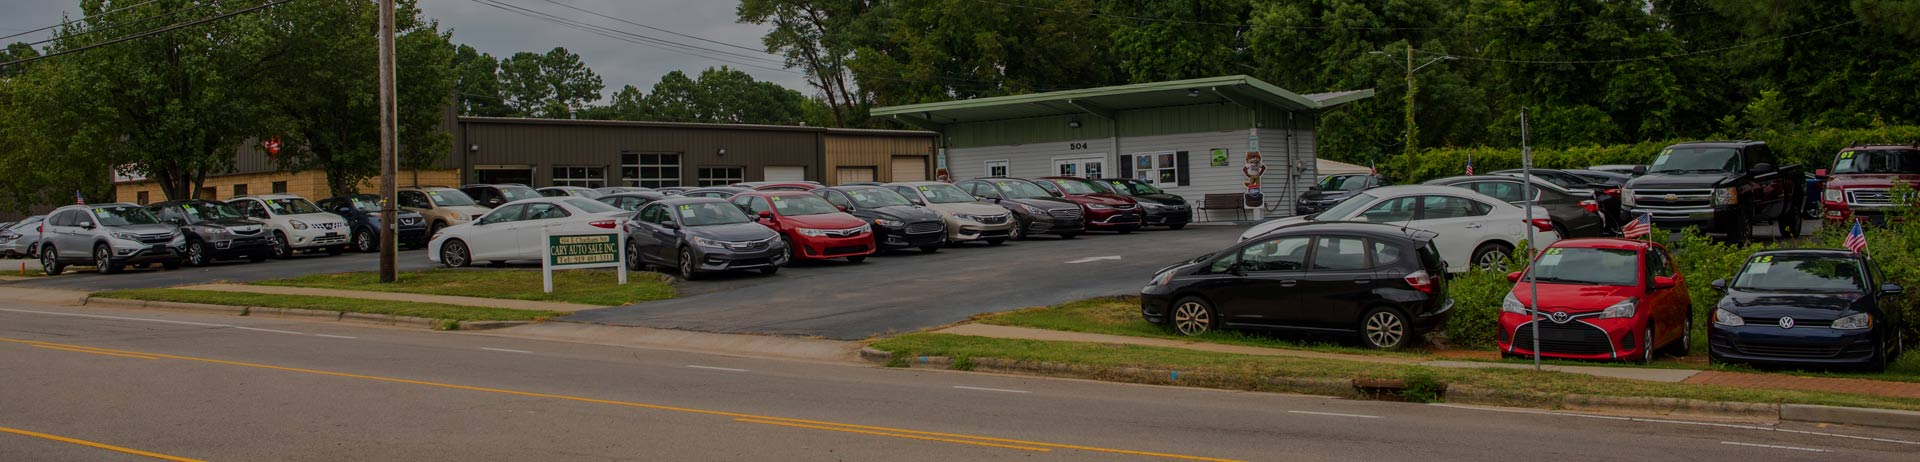 Public Auto Sales >> Cary Auto Sales High Quality Preowned Car Dealership